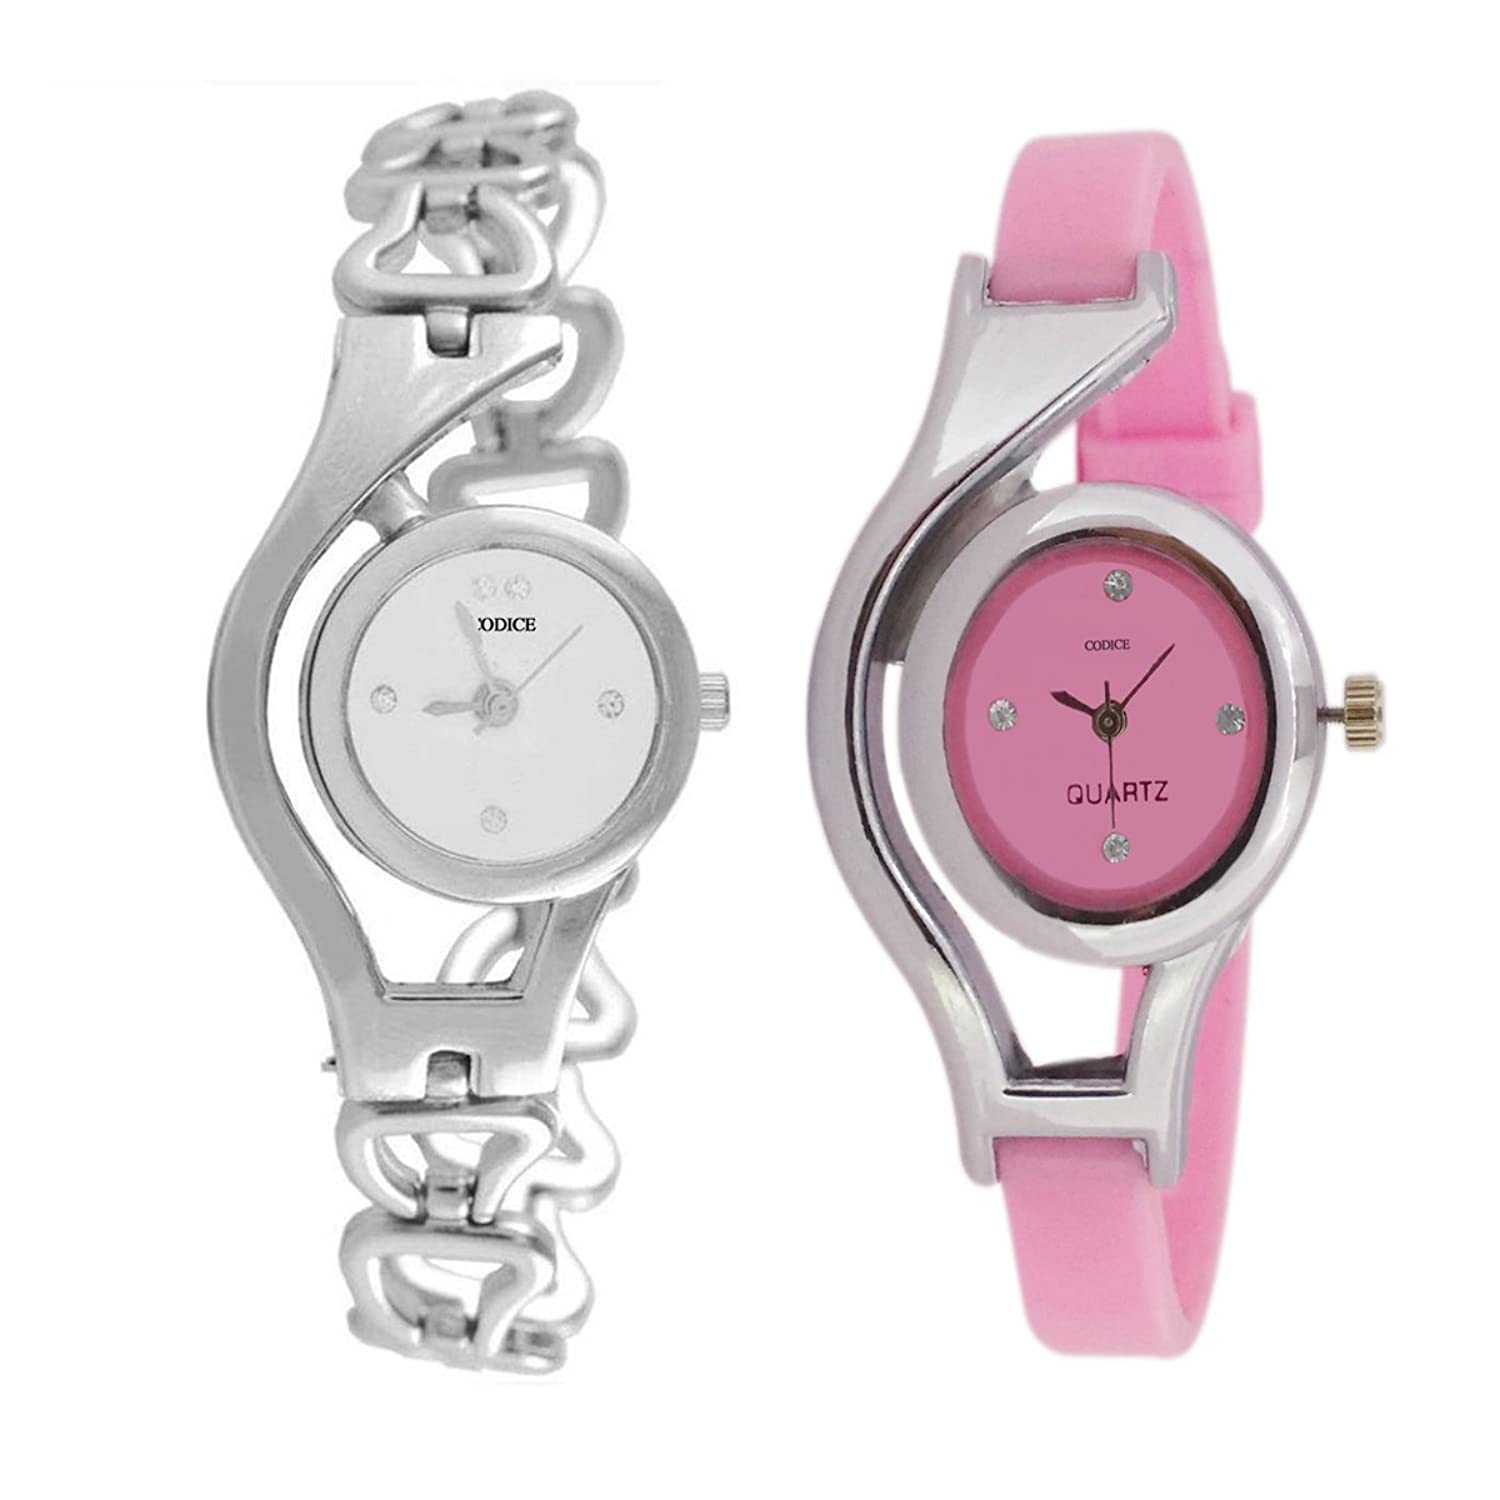 Buy Codice Cpmbo Pack of 2 Analogue MultiColor Dial Girls Watch ...